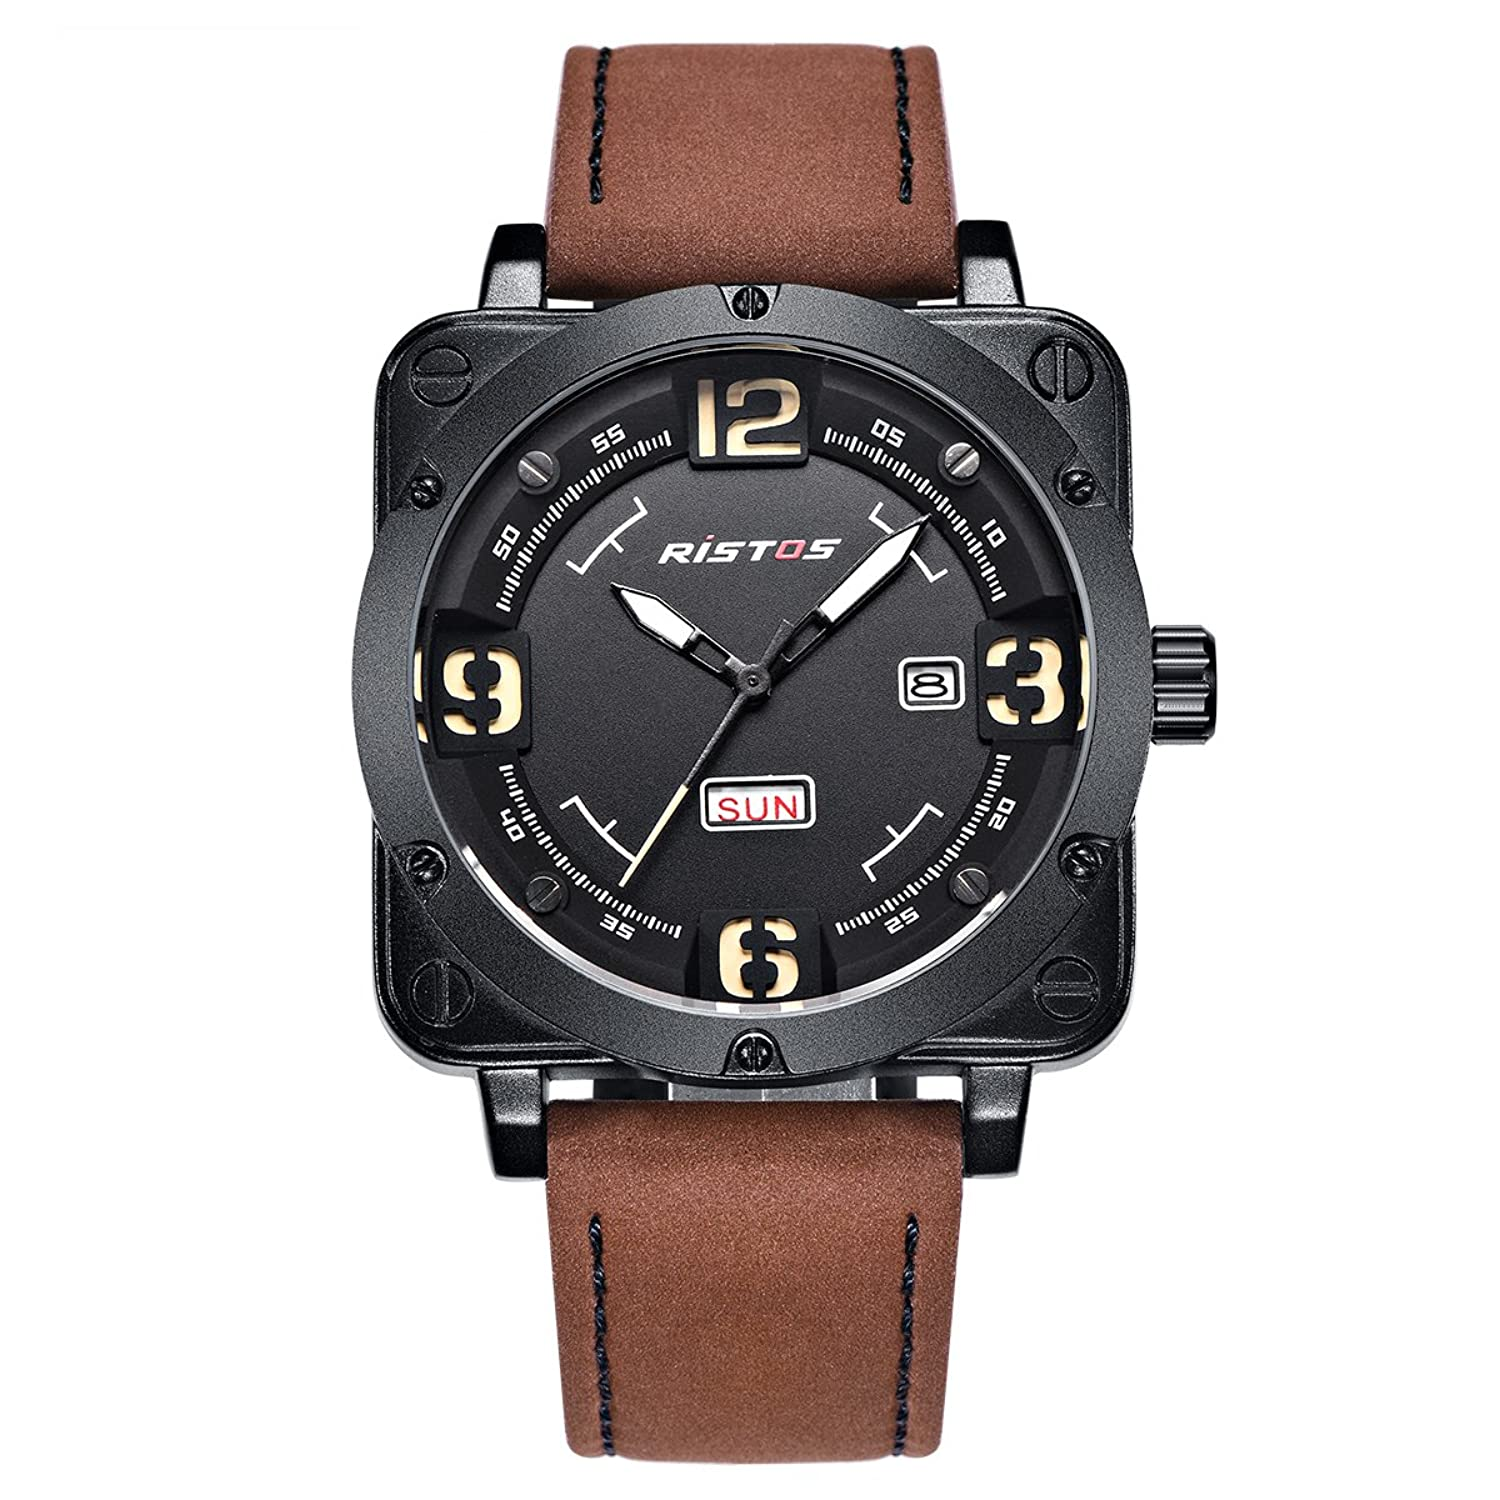 LONGBO Men 's Unique Big FaceアナログクォーツSquare Case Watch BrownレザーバンドビジネスWrist Watches Sportive Luminous防水自動日付日カレンダーArmy Military Watch for Man B071RPXP7J